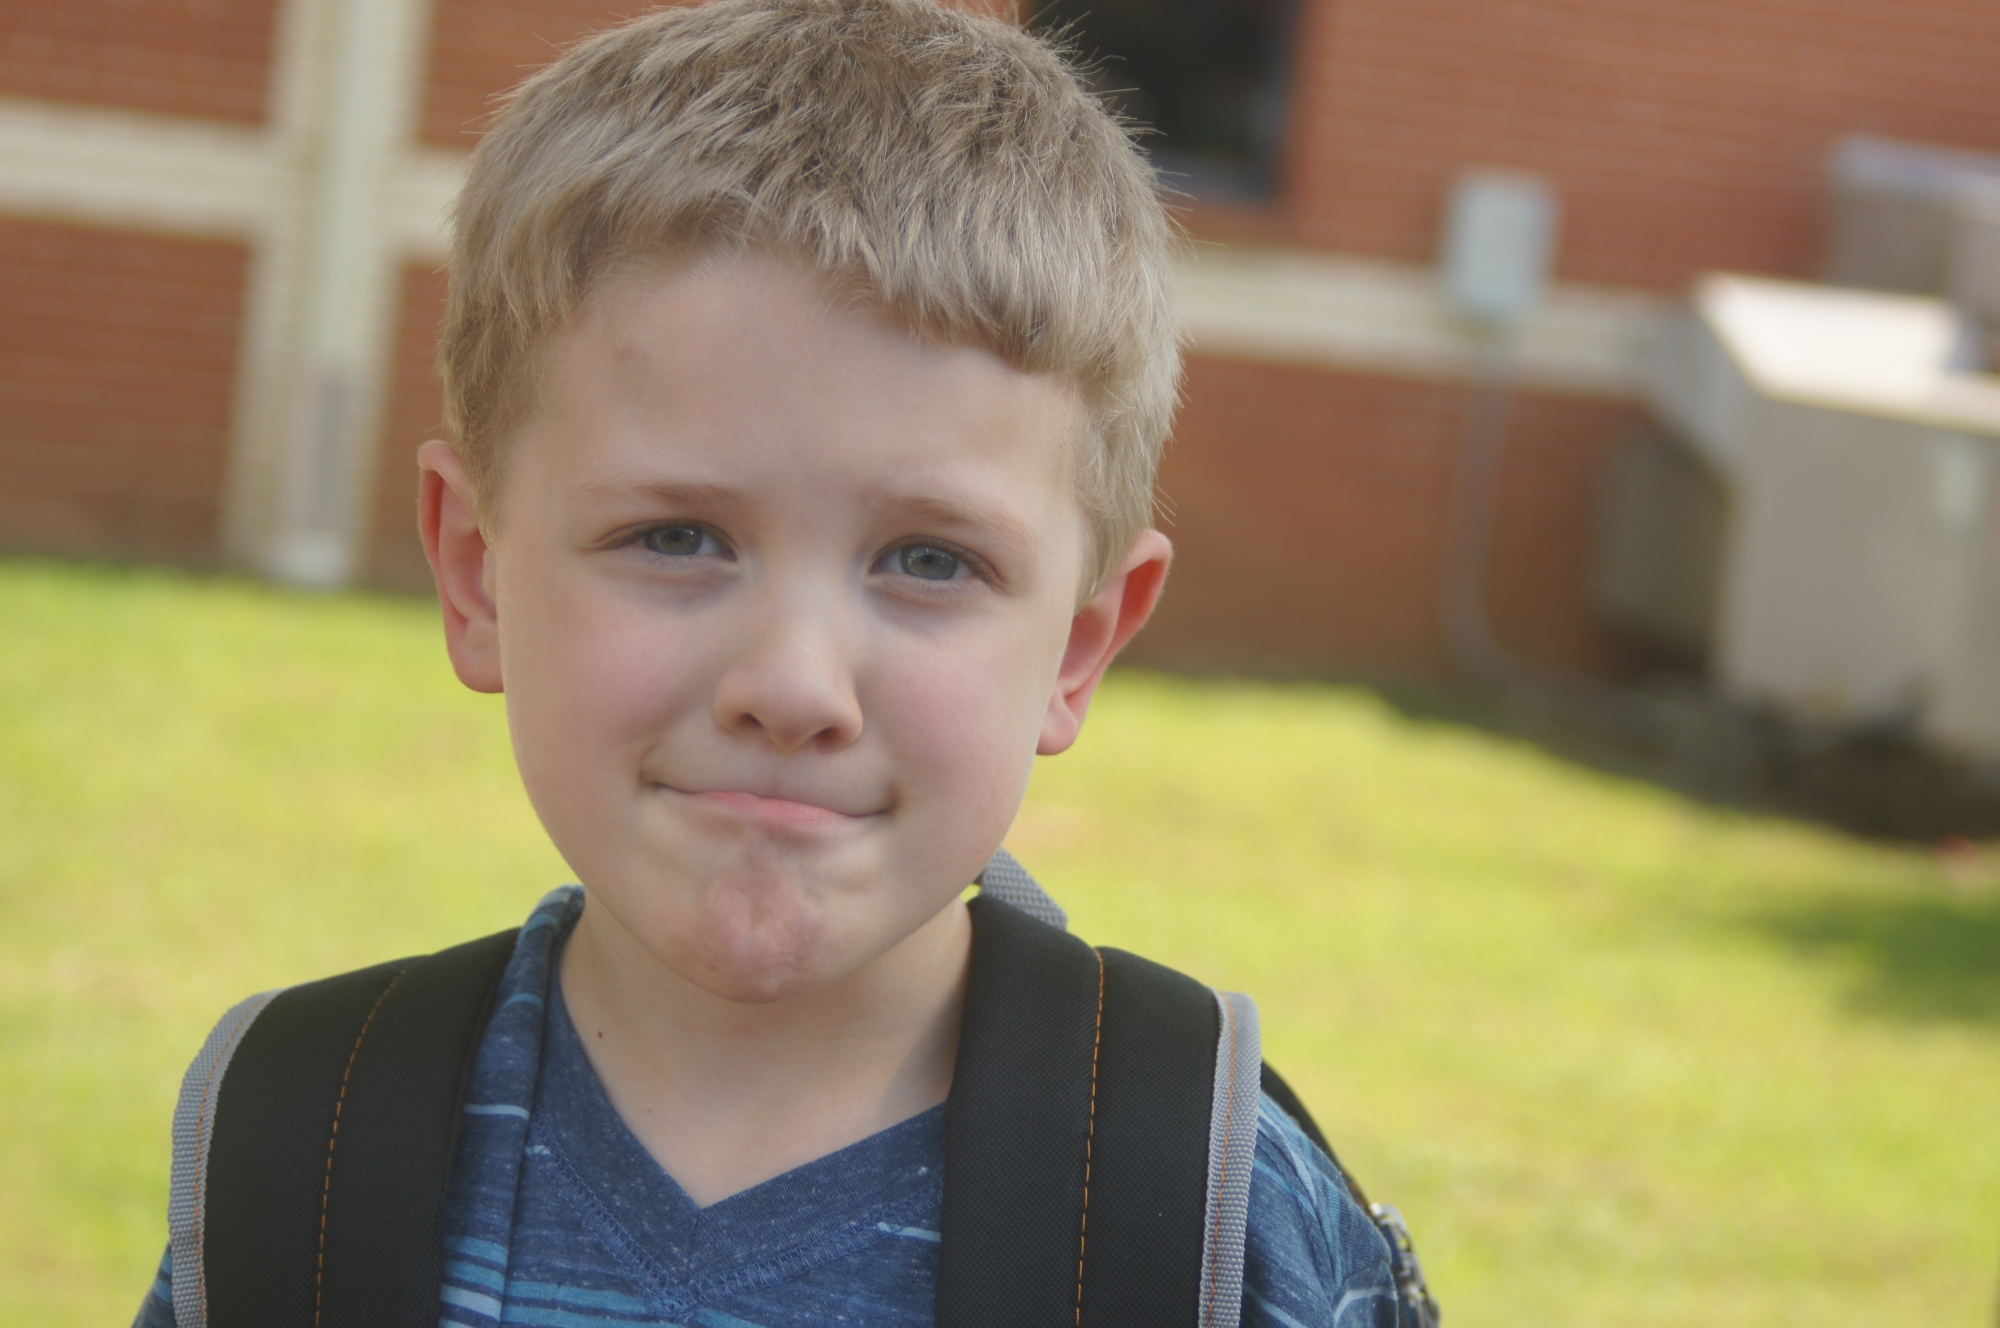 David's first day of being a 1st grader, Westwood Elementary